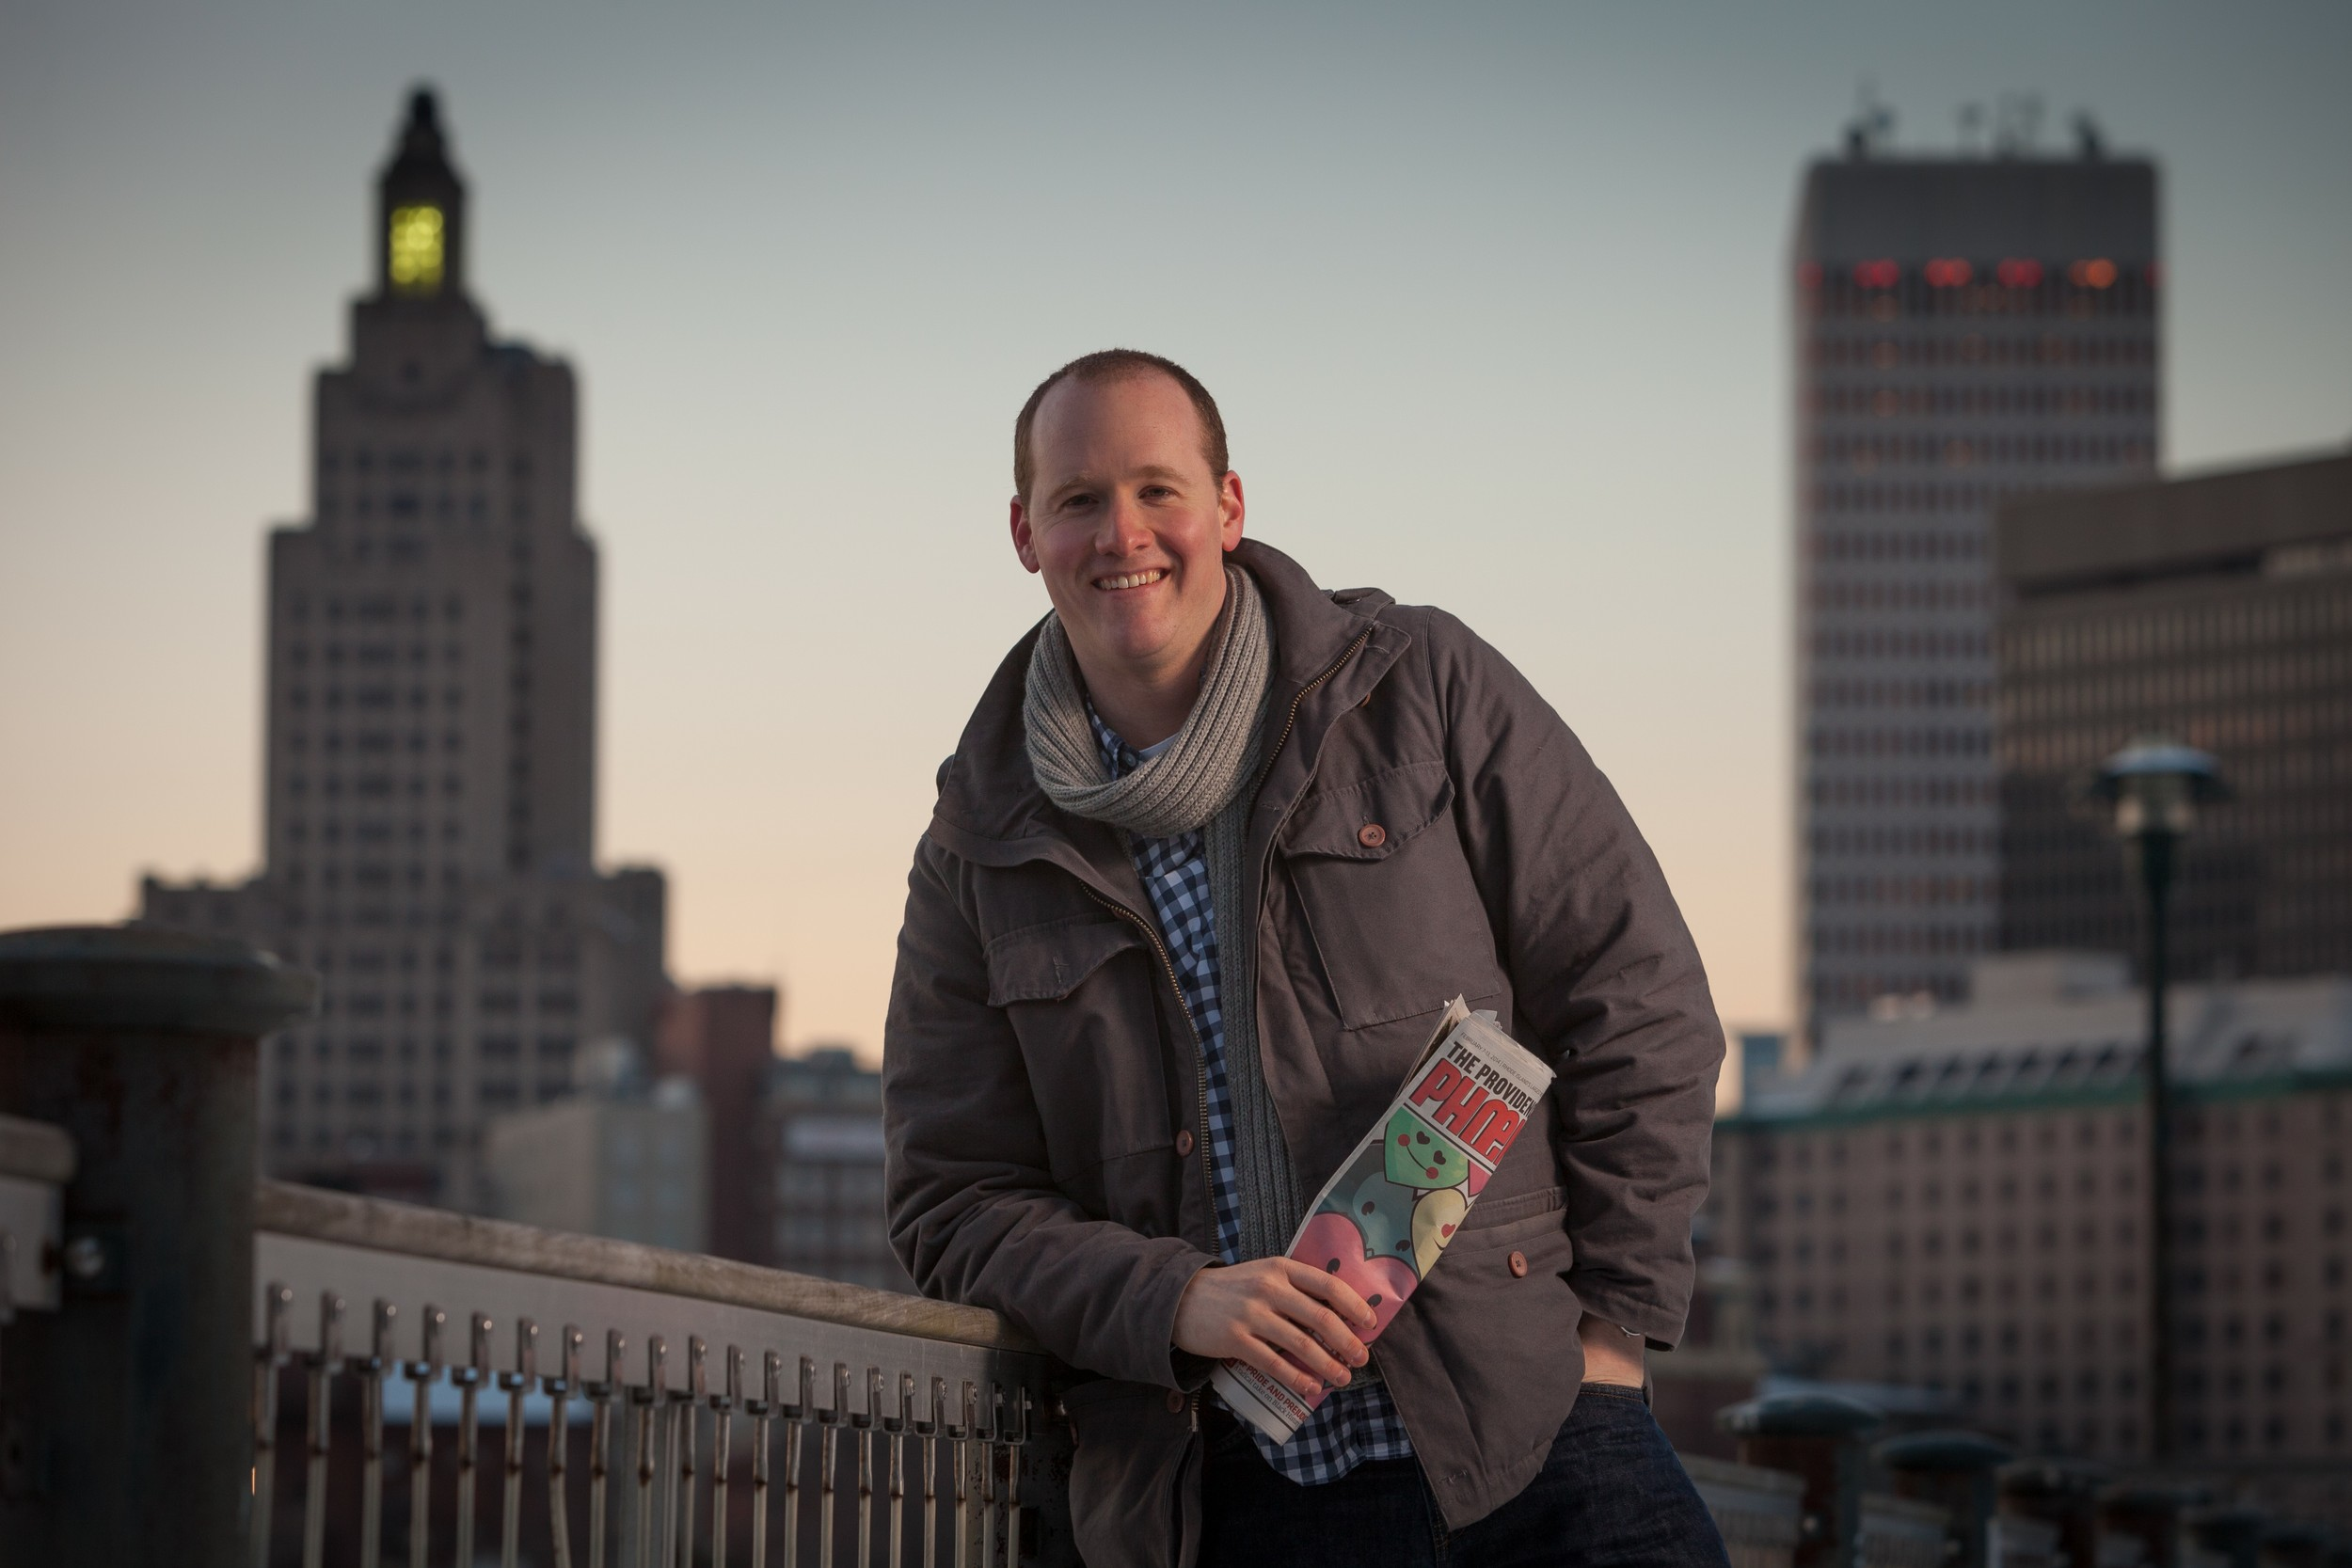 Phil Eil, the news editor at the Providence Phoenix, with the skyline of Providence at sunset behind him. Eil discusses his views about the conversation that Rhode Island needs to engage in.